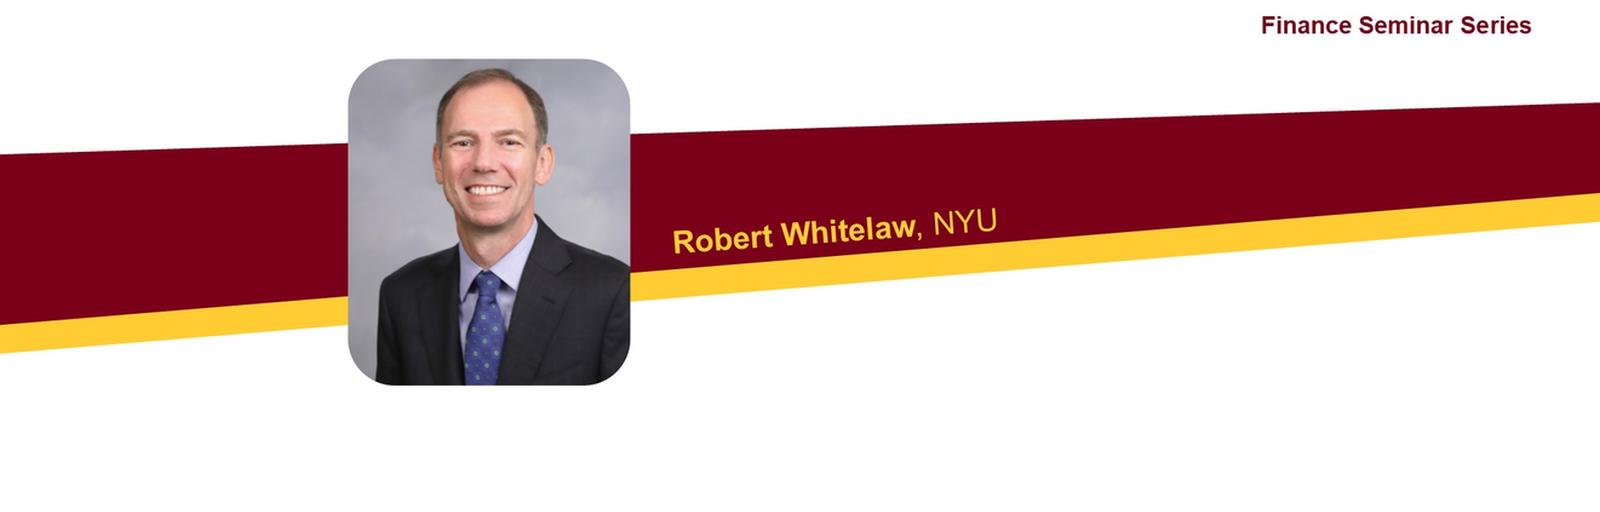 Photo of Robert Whitelas with event text